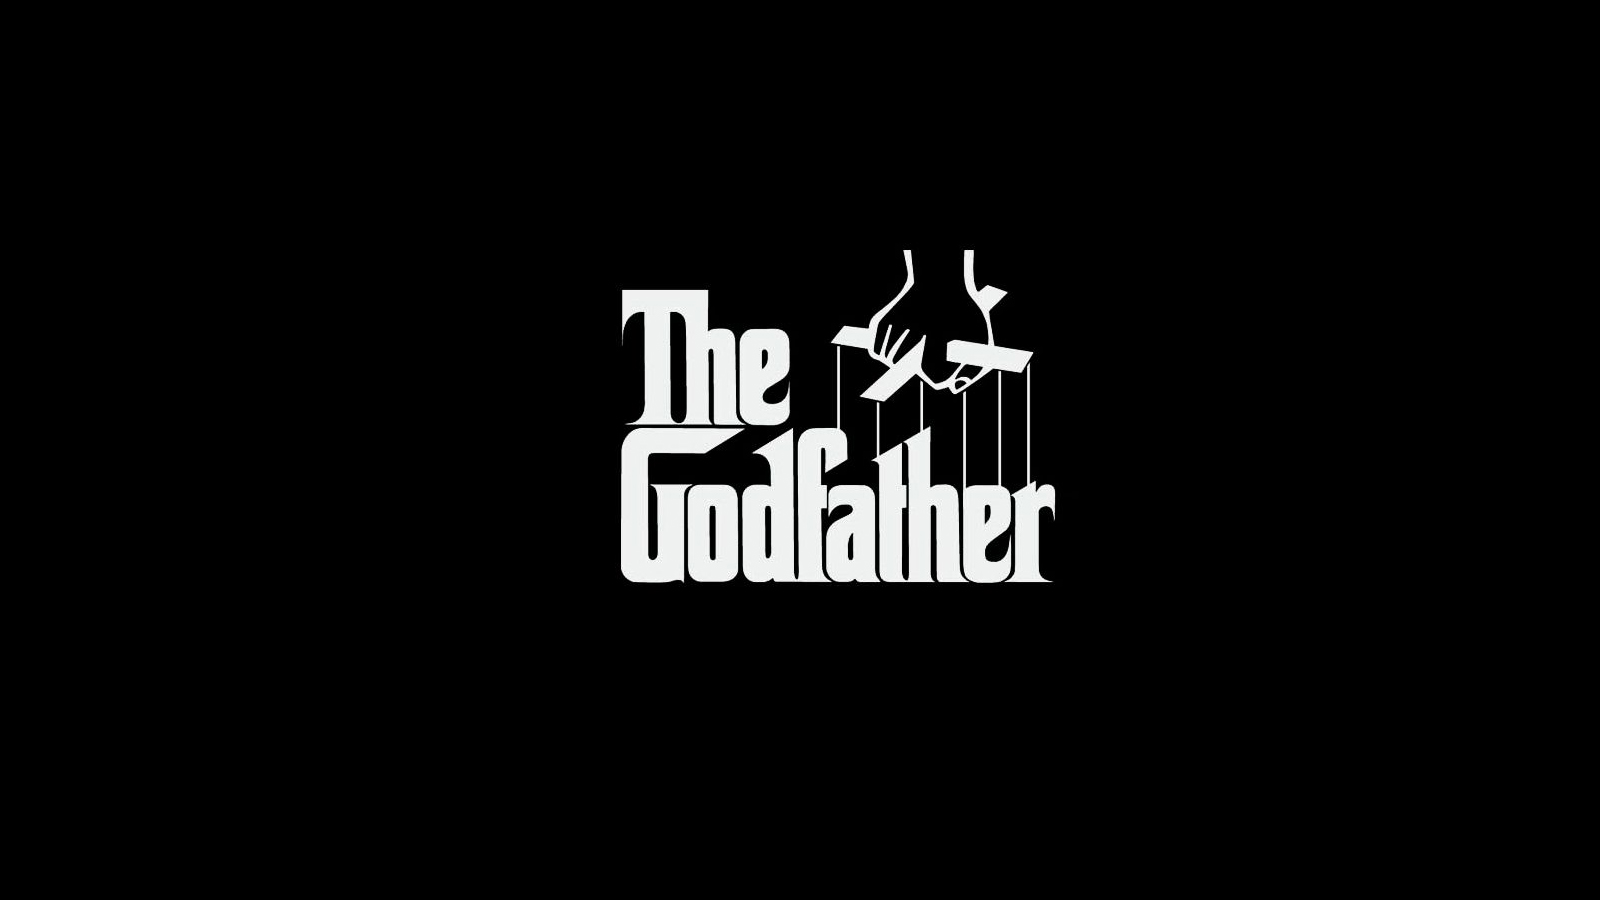 the godfather wallpaper and background image 1600x900